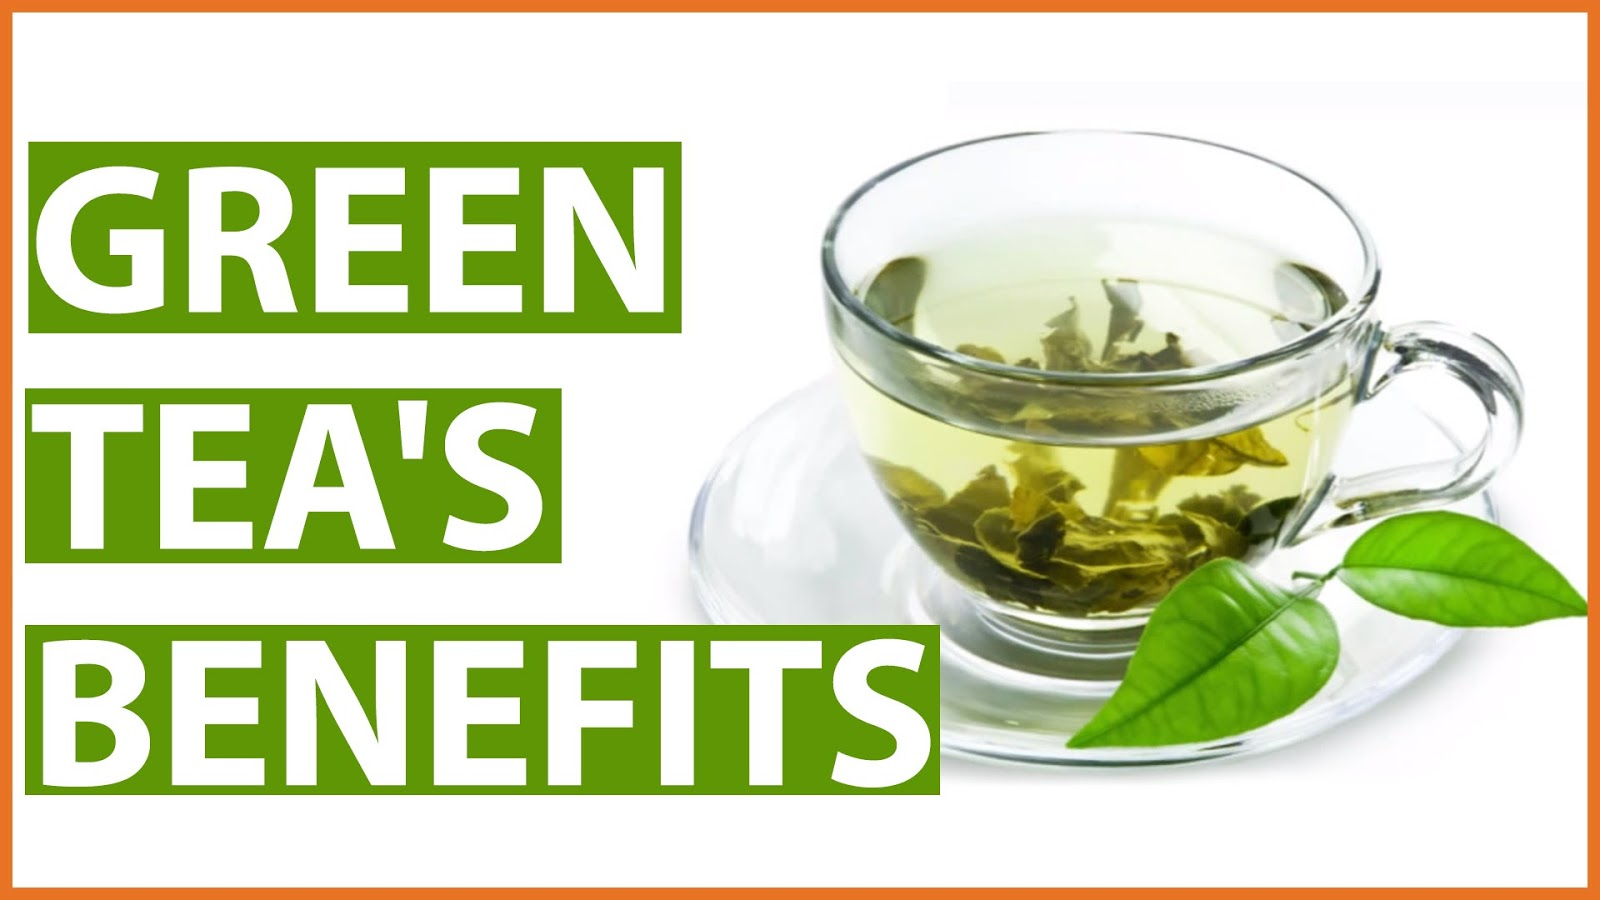 10 Benefits of Green Tea